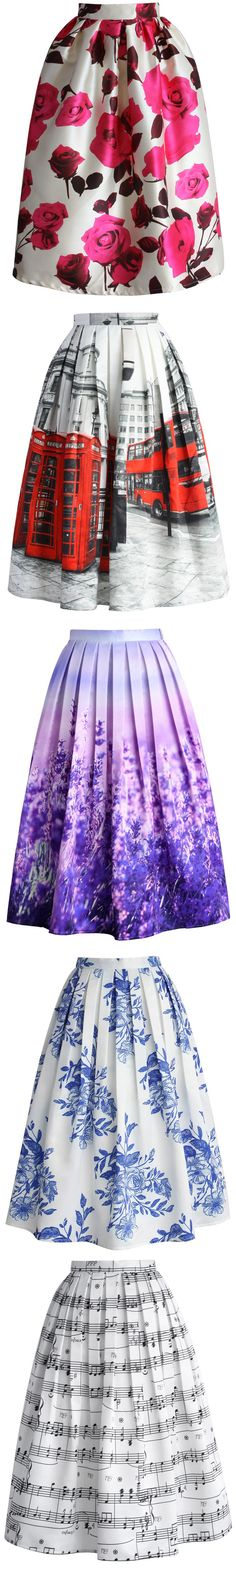 floral skirt, scenic print midi skirt collection, these are kinda cool, especially the blue flower one Estilo Fashion, Look Fashion, Spring Fashion, Womens Fashion, Fashion Trends, Pretty Outfits, Cool Outfits, Vetements Clothing, Look 2015